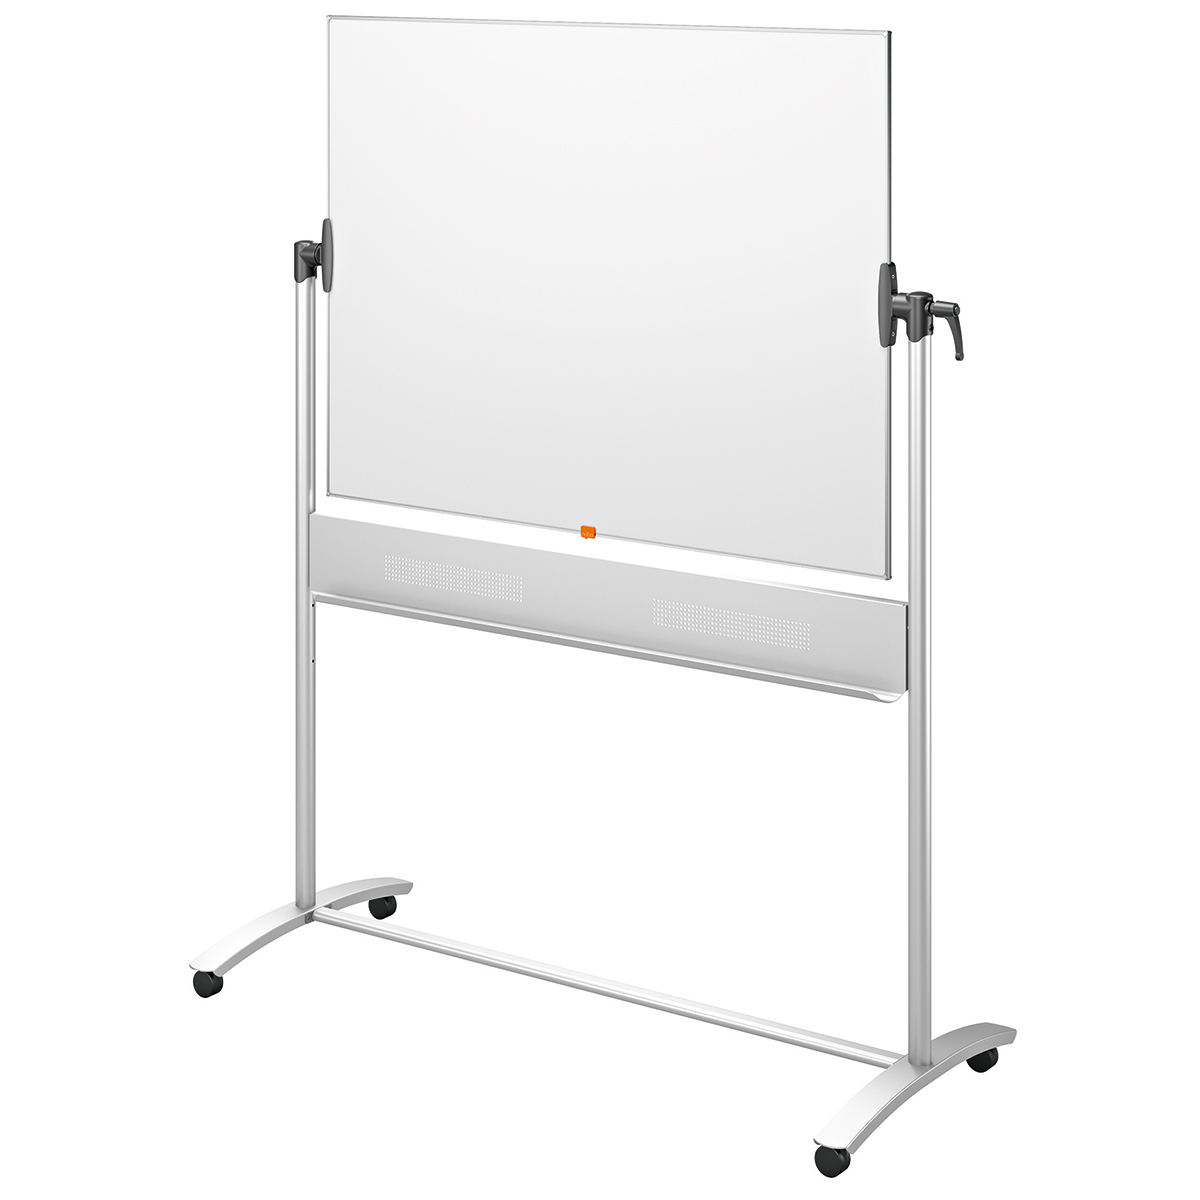 Nobo 1901033 Prestige Enamel Mobile Whiteboard 1200 x 900mm